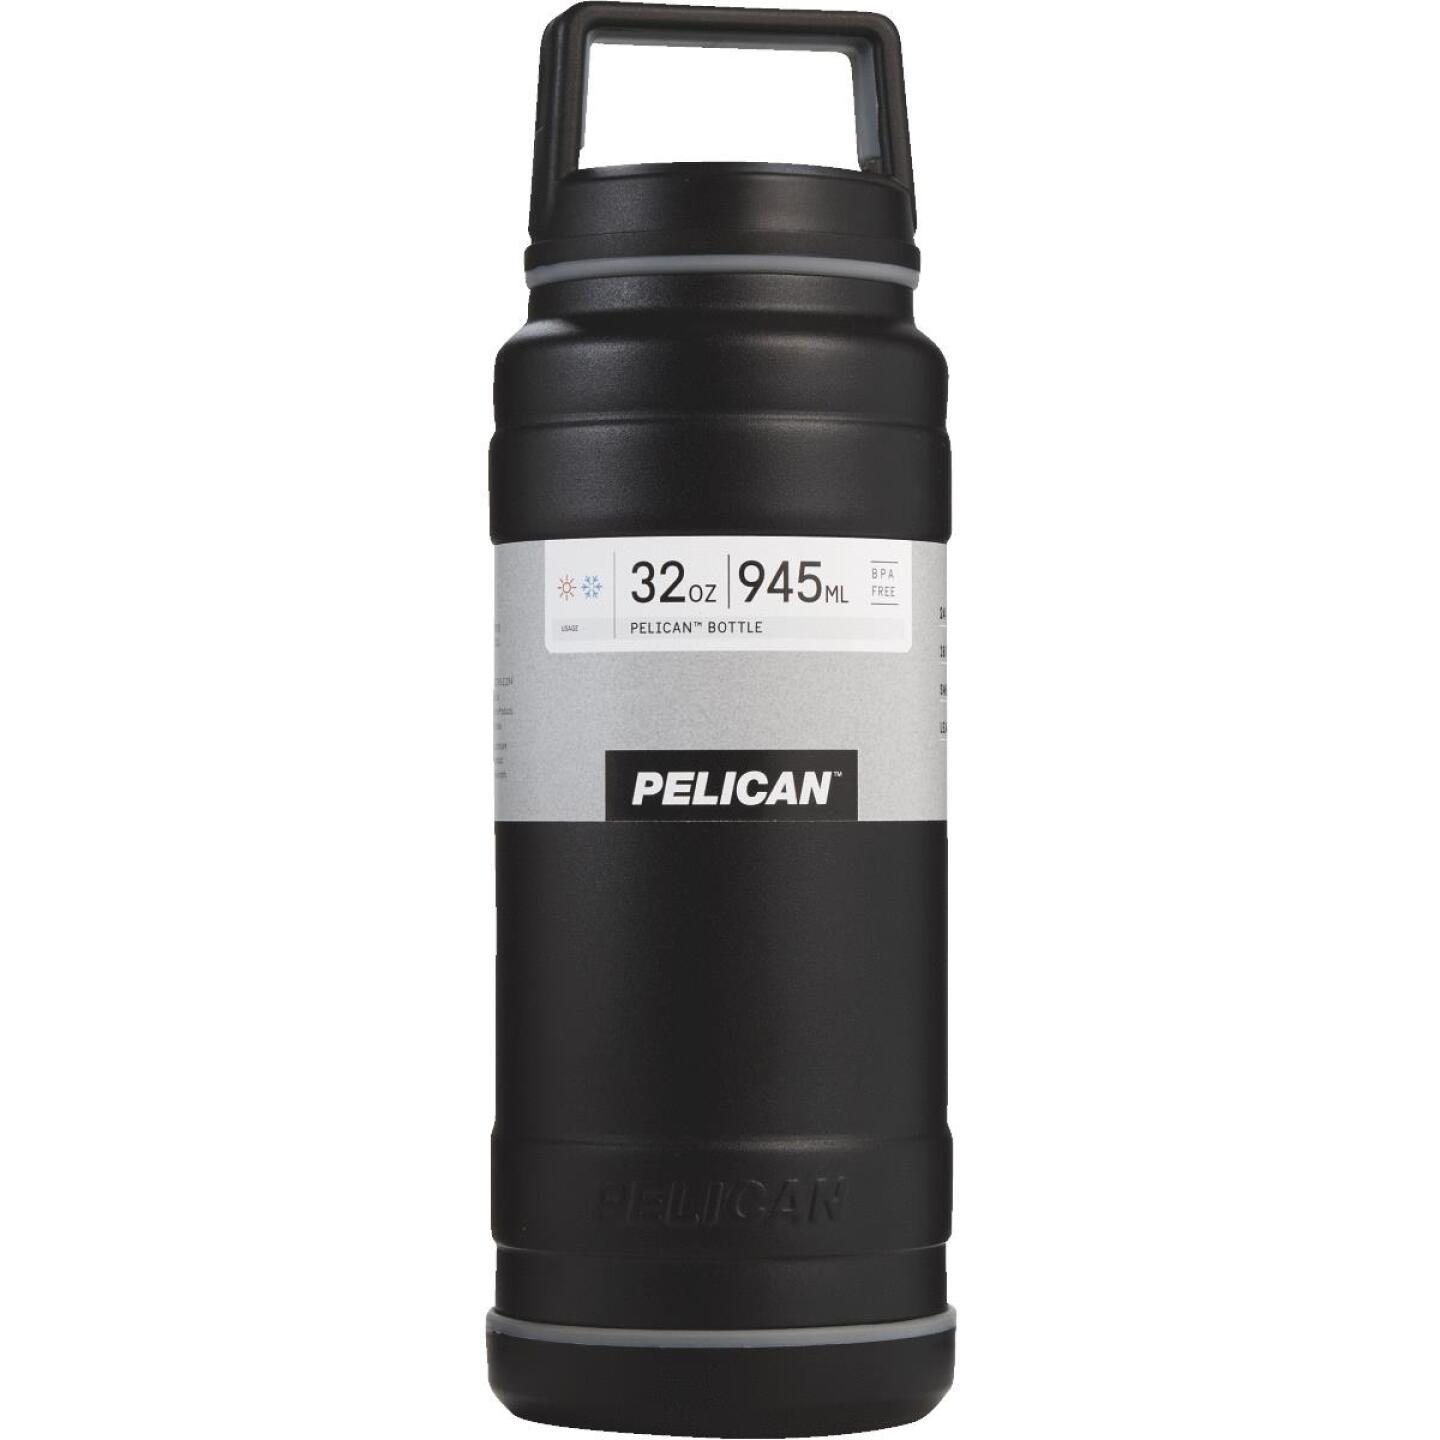 Pelican 32 Oz. Black Stainless Steel Travel Bottle Image 1